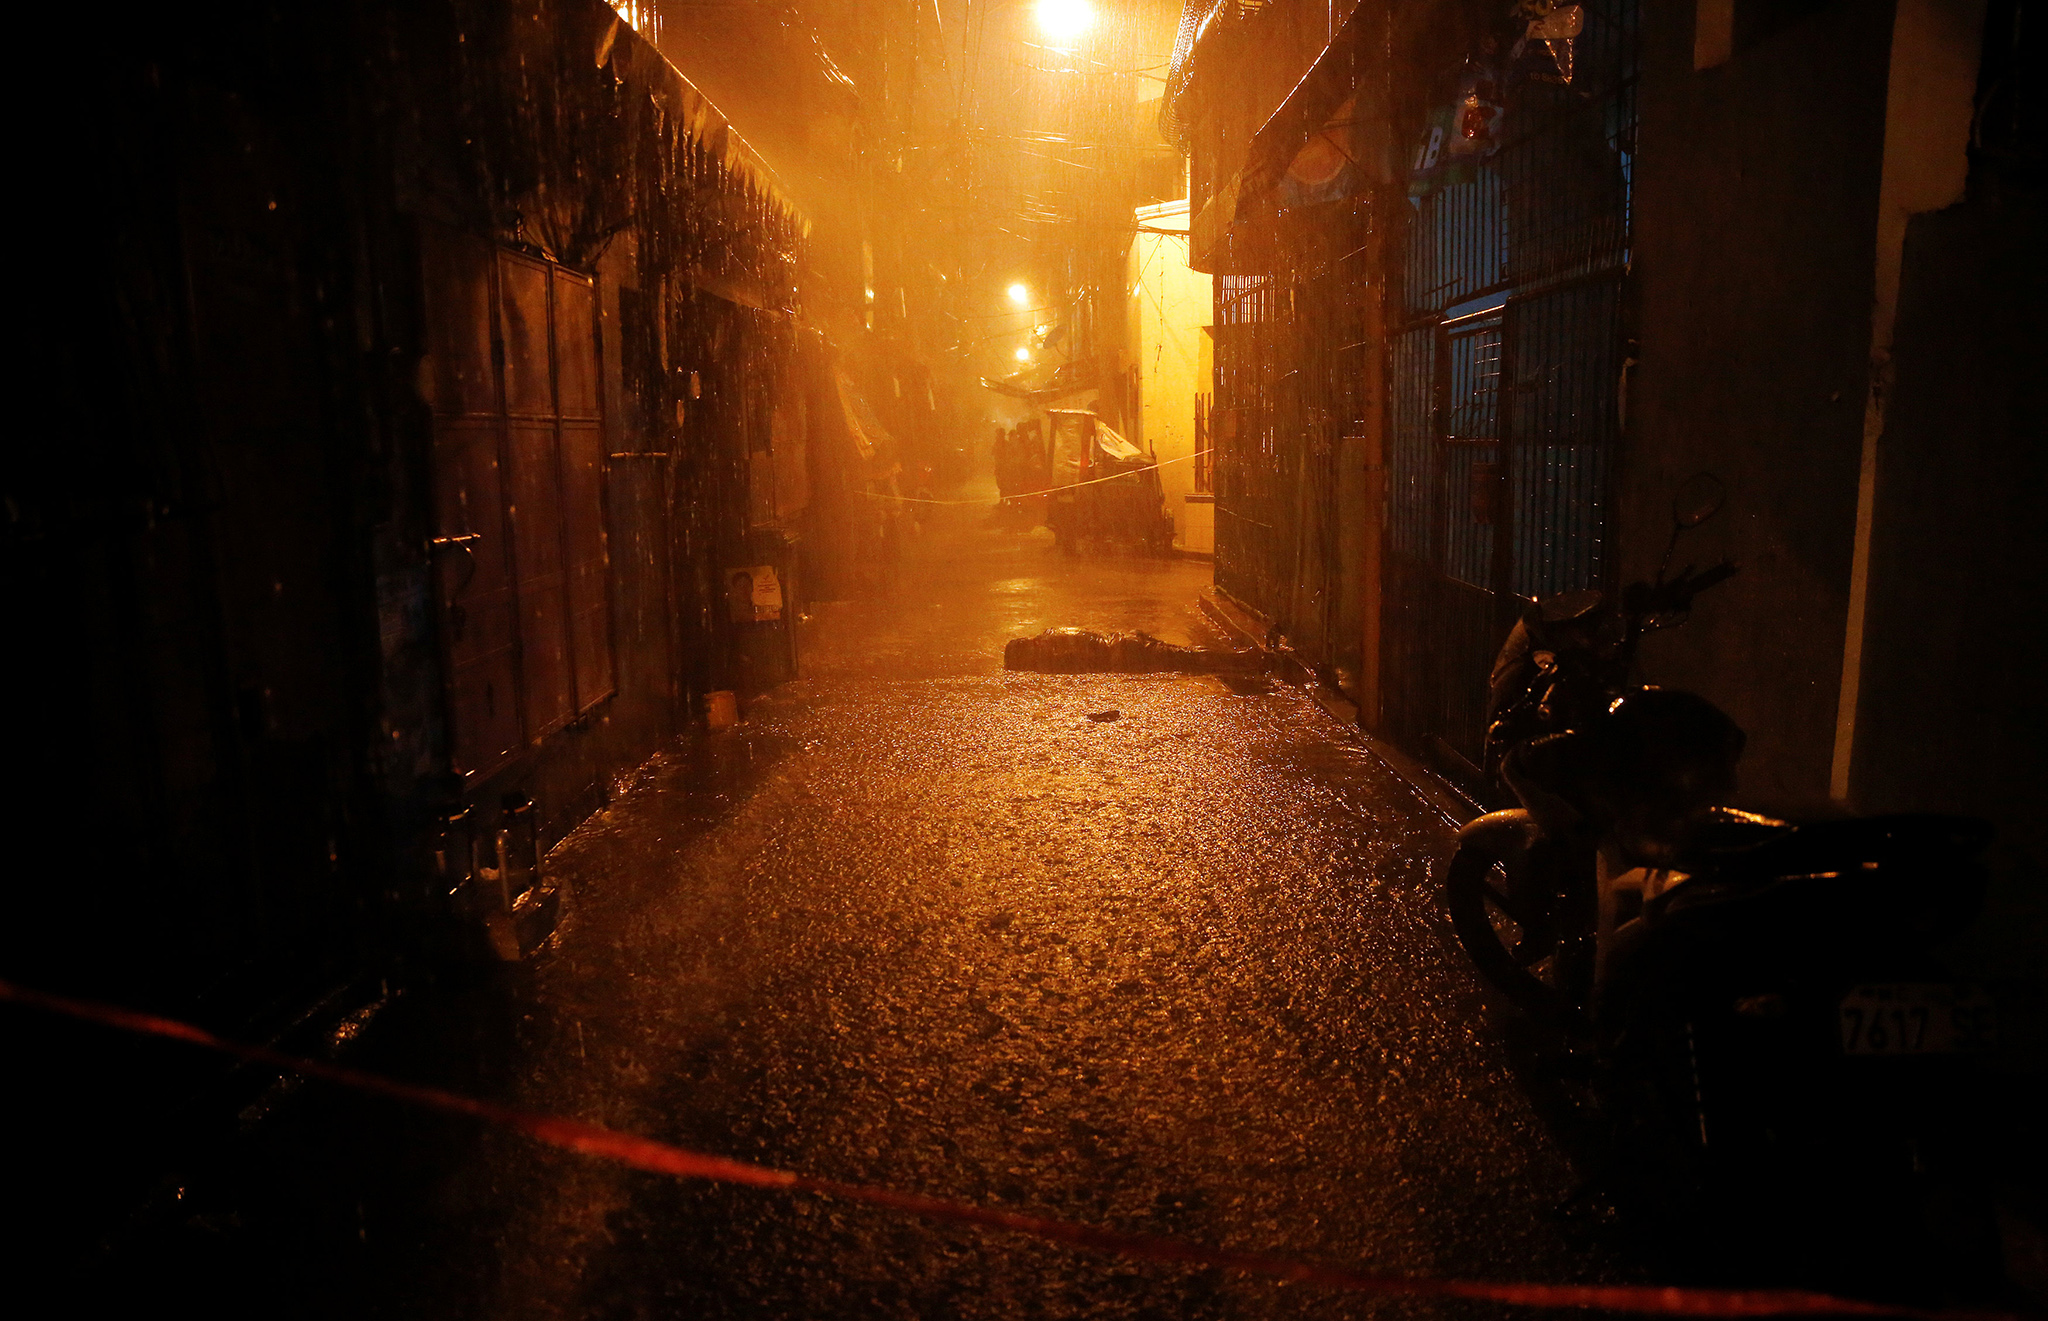 Heavy rain pours as the body of a man killed by unidentified gunmen riding motorcycles is left in a narrow alley in Manila, Philippines early October 11, 2016. REUTERS/Damir Sagolj TEMPLATE OUT